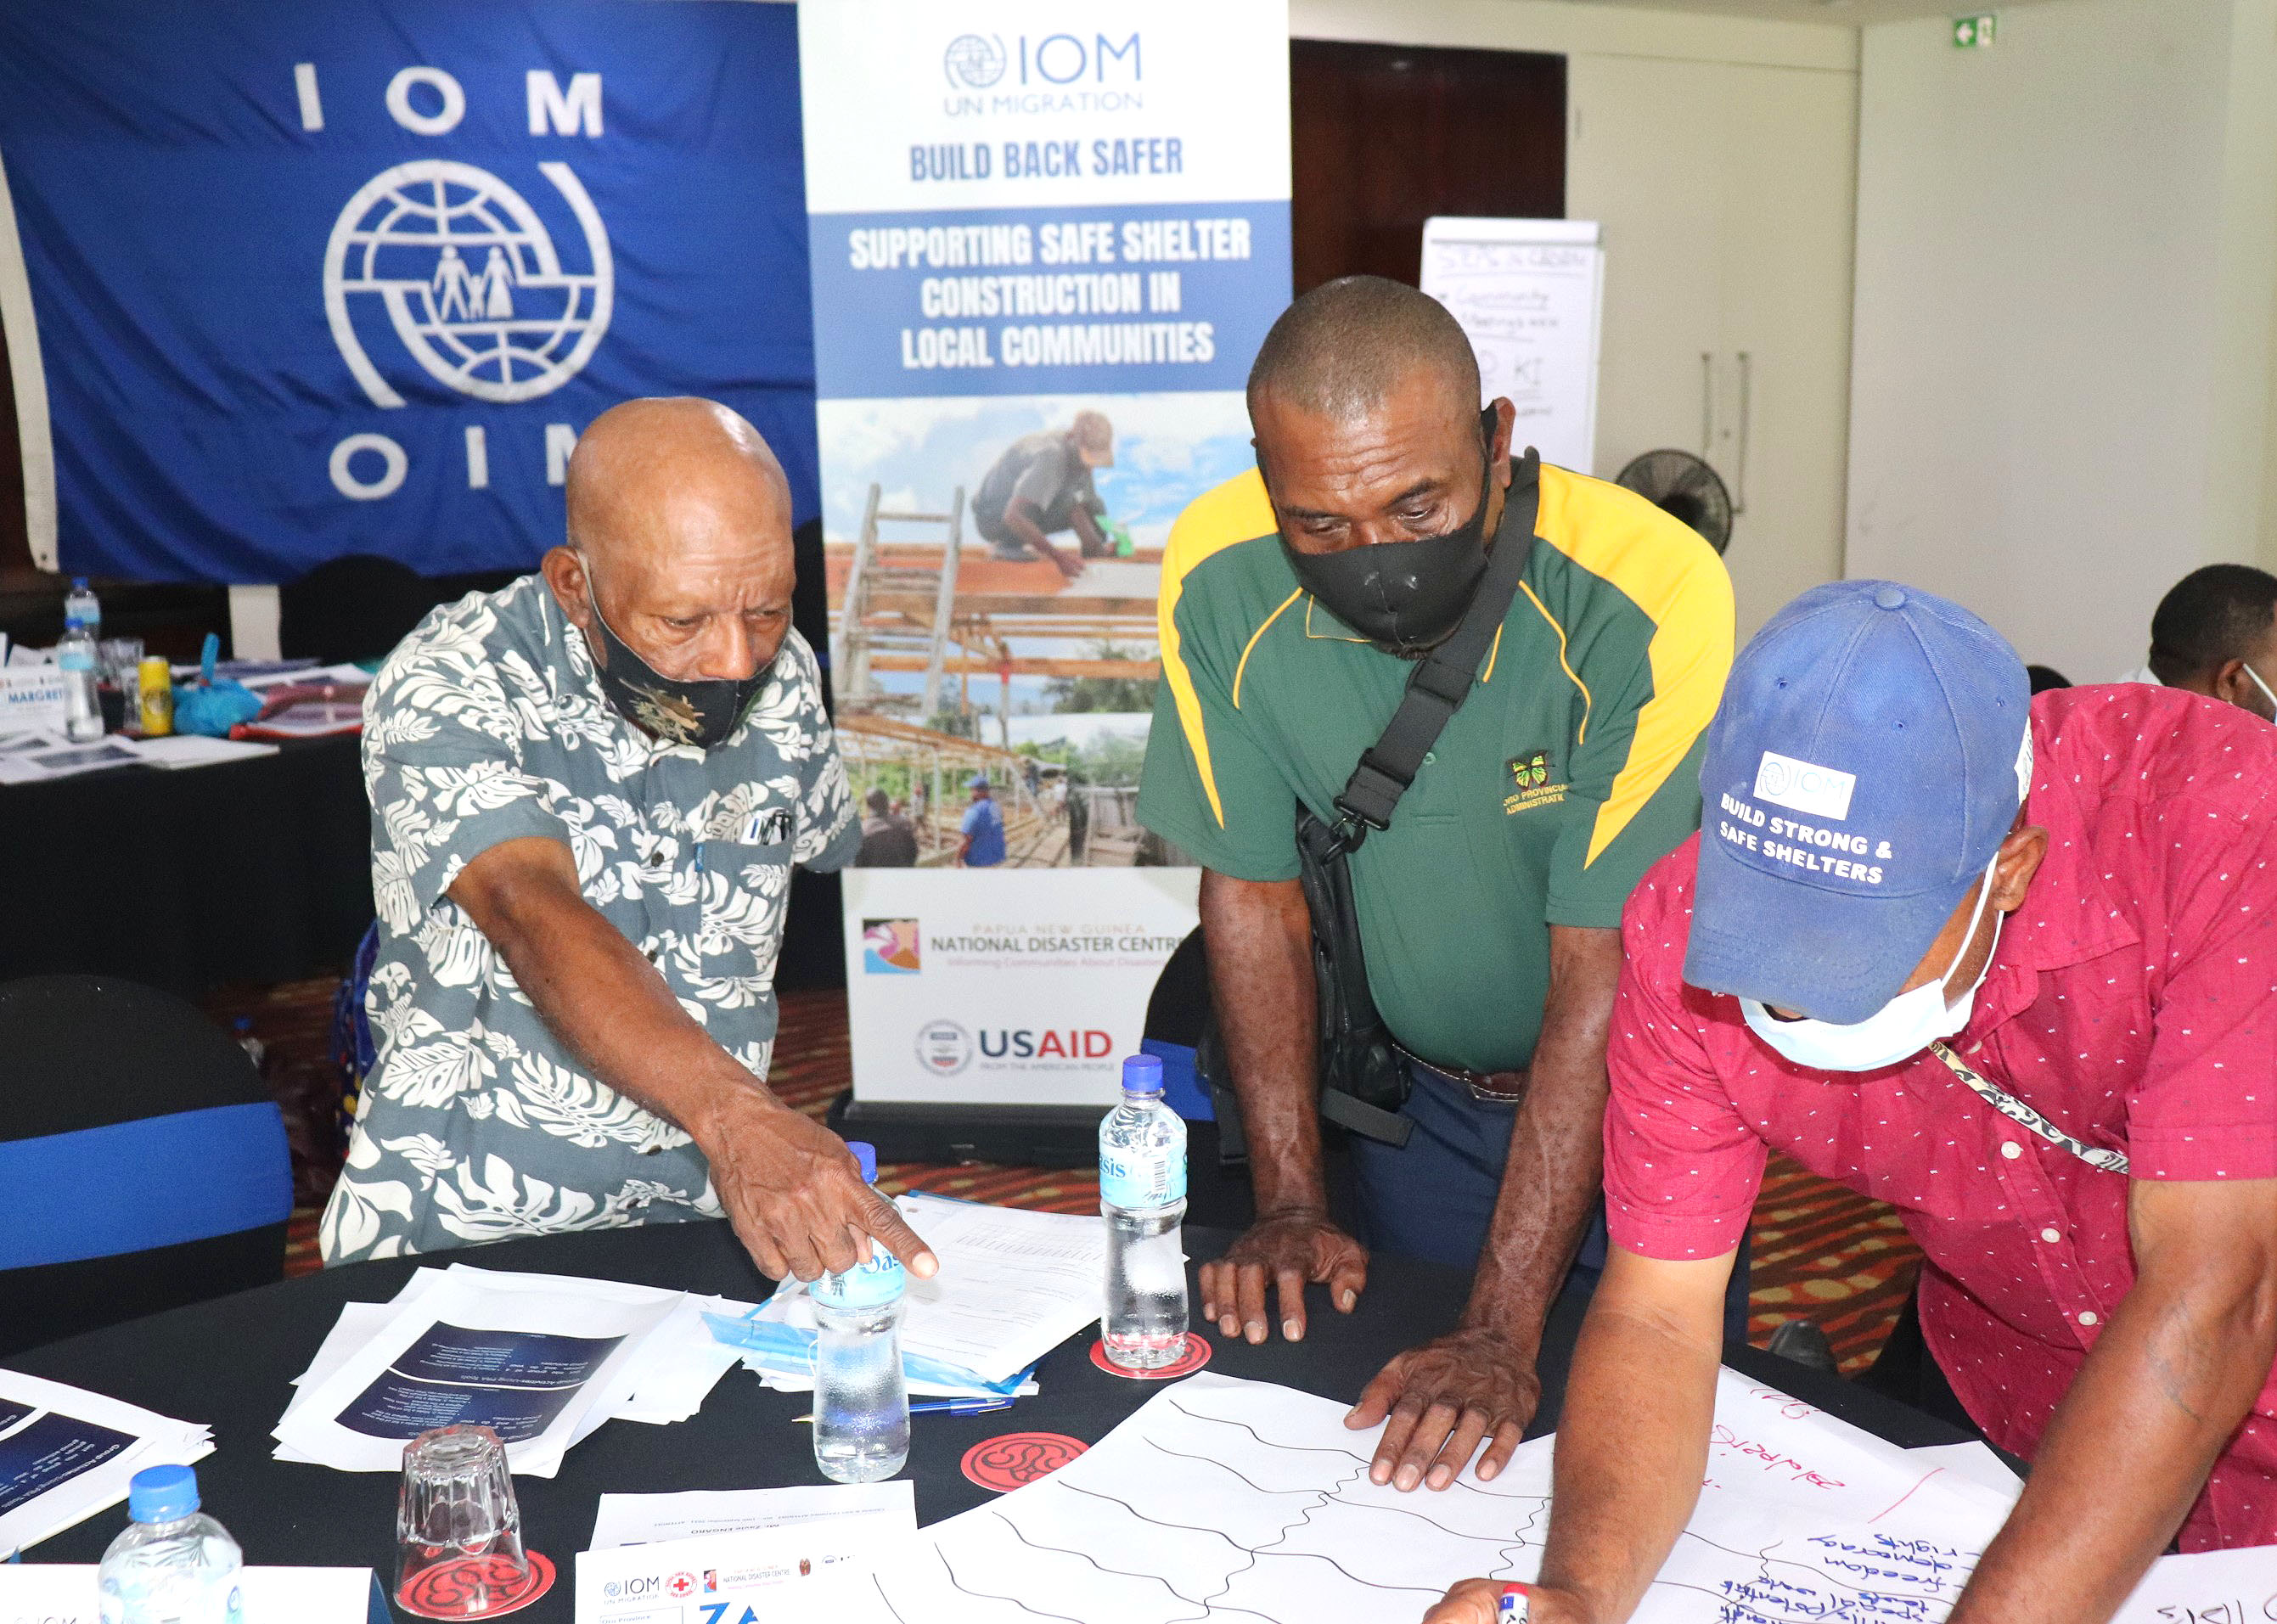 Provincial Disaster Coordinators participating in the IOM facilitated training.